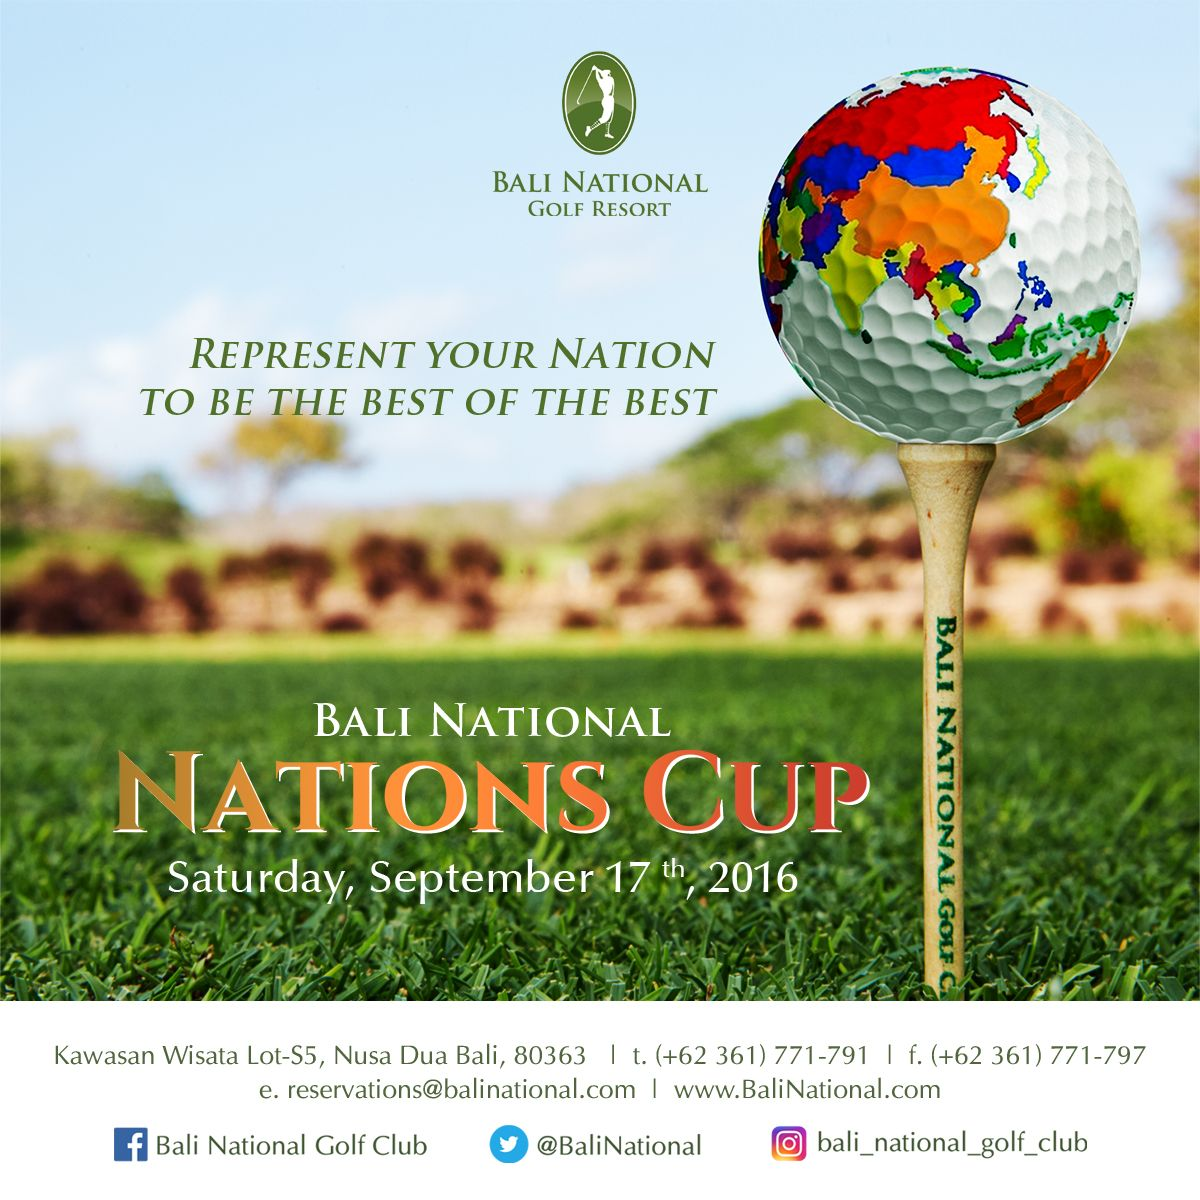 Bali National Nations Cup 2016